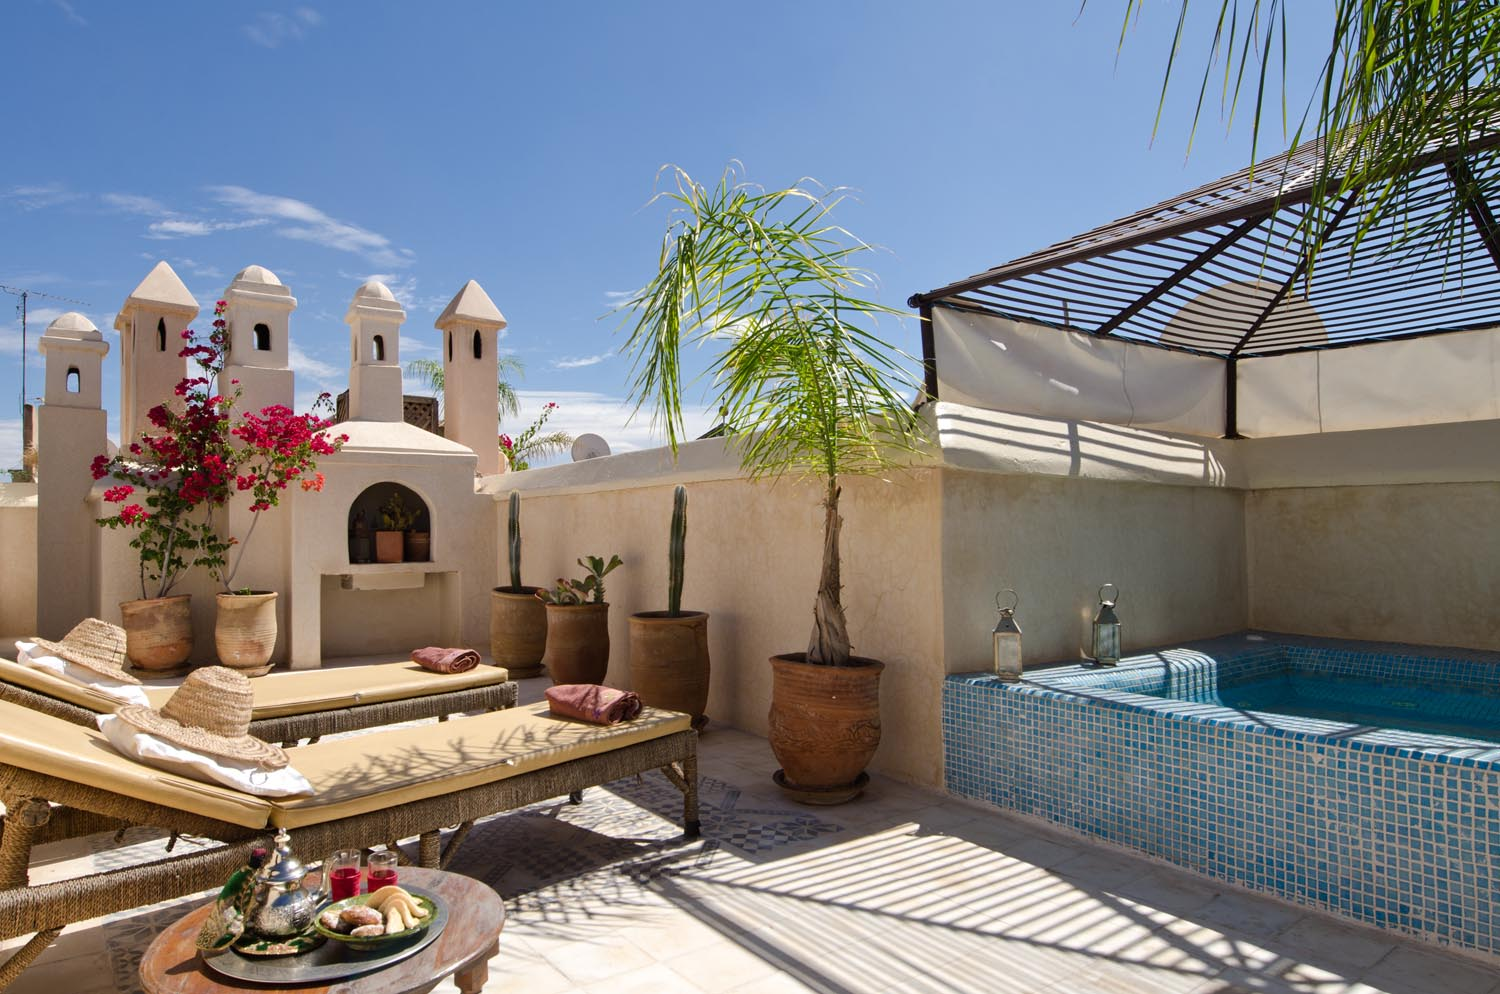 Riad vert luxury riad in marrakech morocco book riad for Decoration jardin terrasse